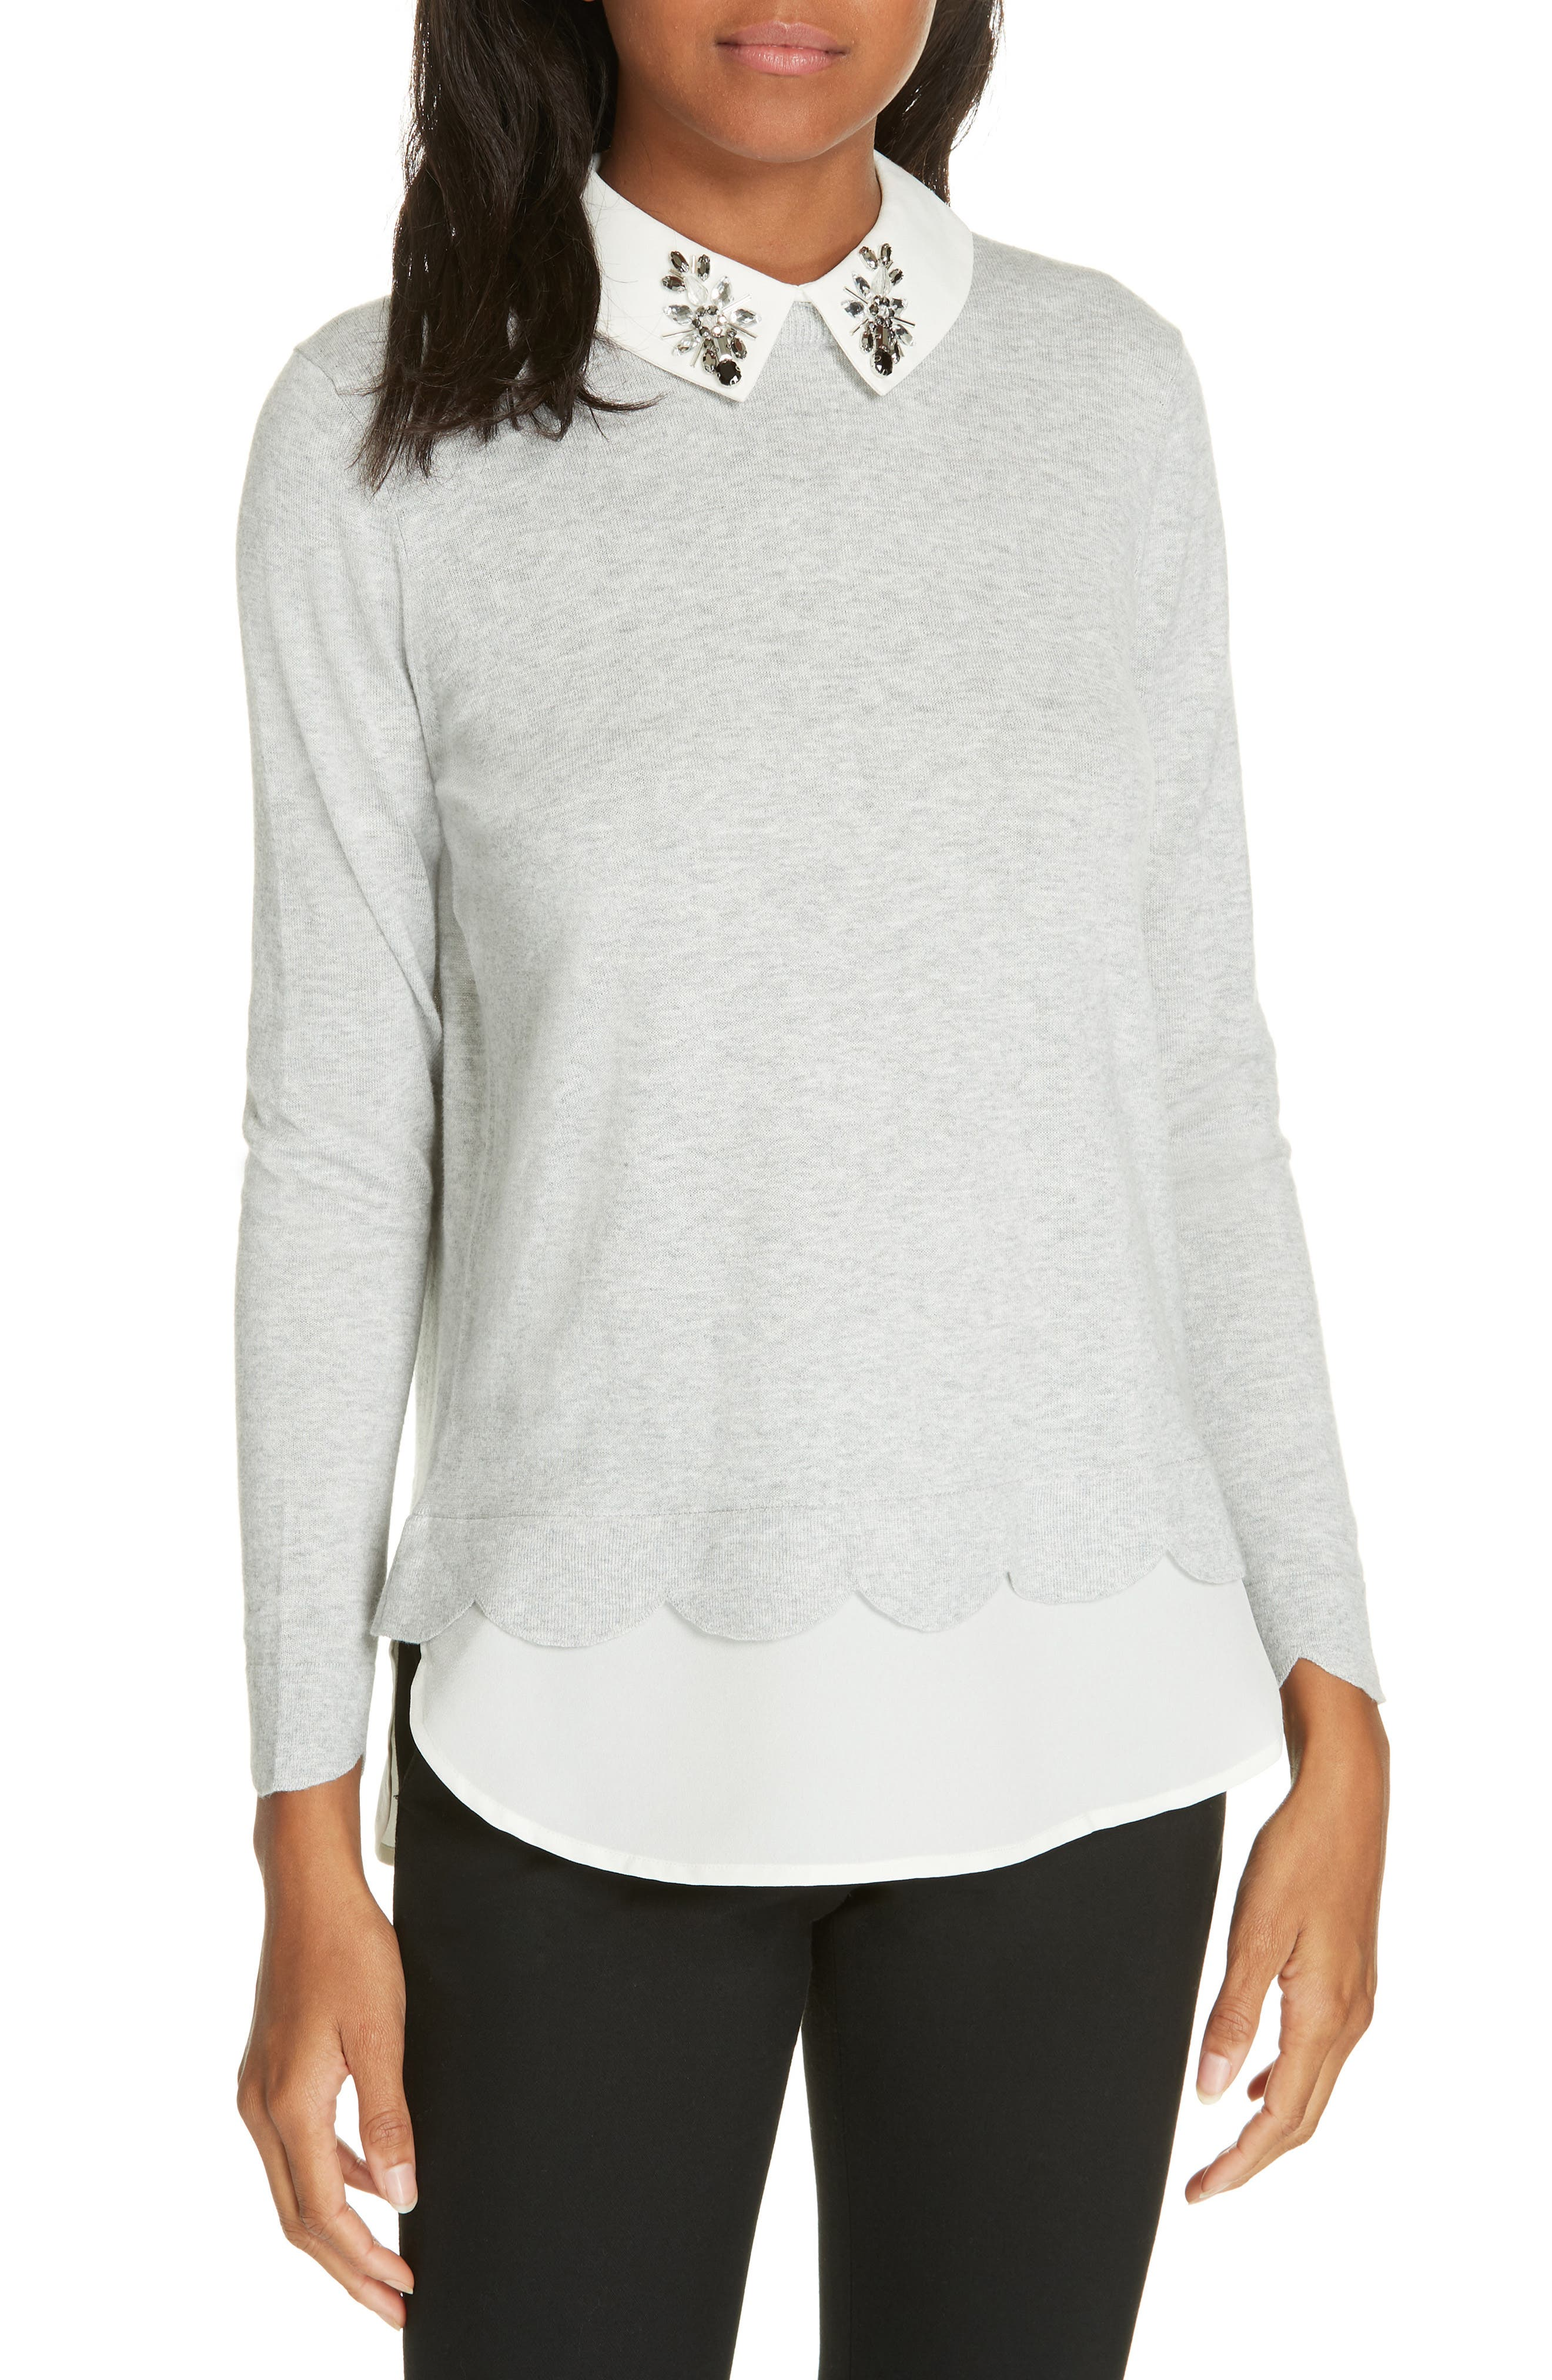 Suzaine Layered Sweater,                         Main,                         color, GREY